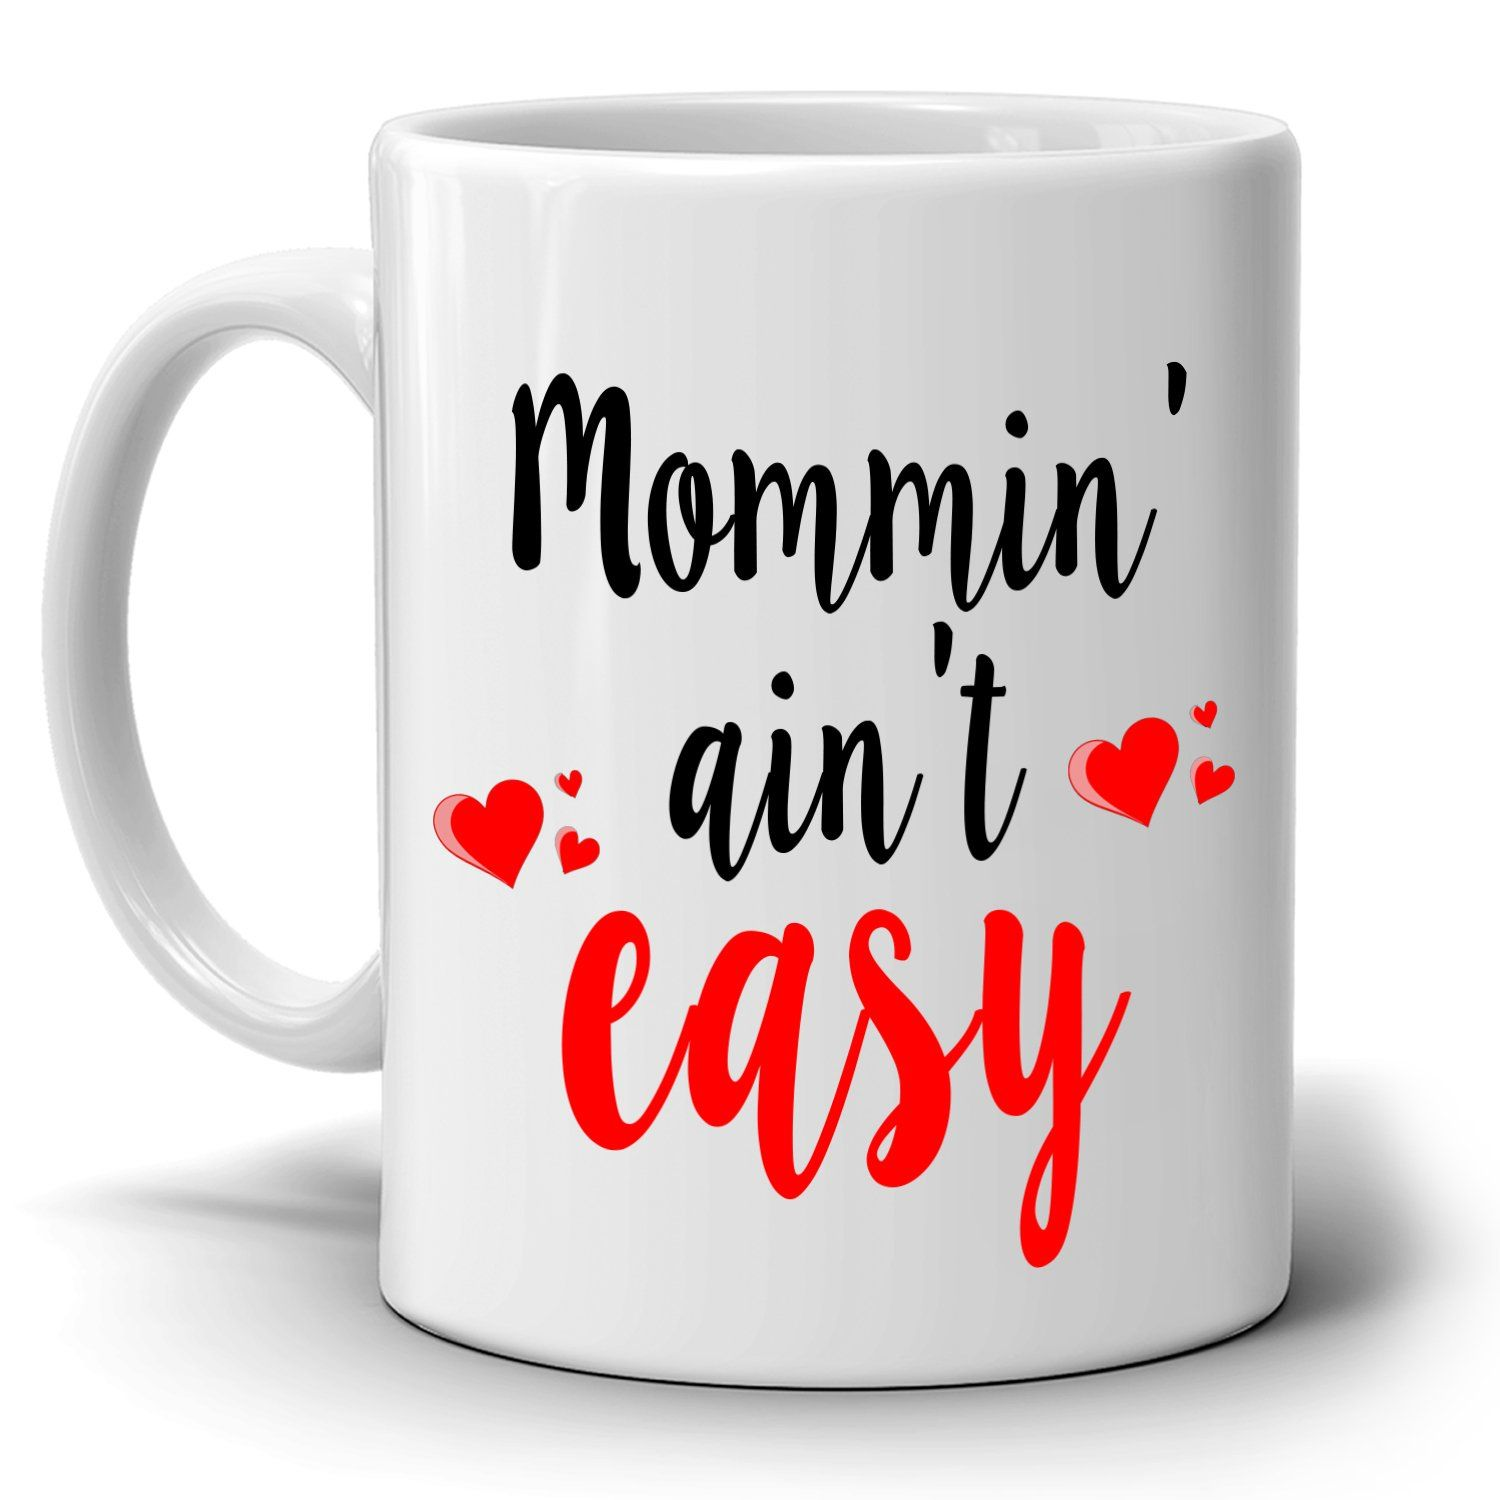 First time mom mothers day gifts mug mommin aint easy